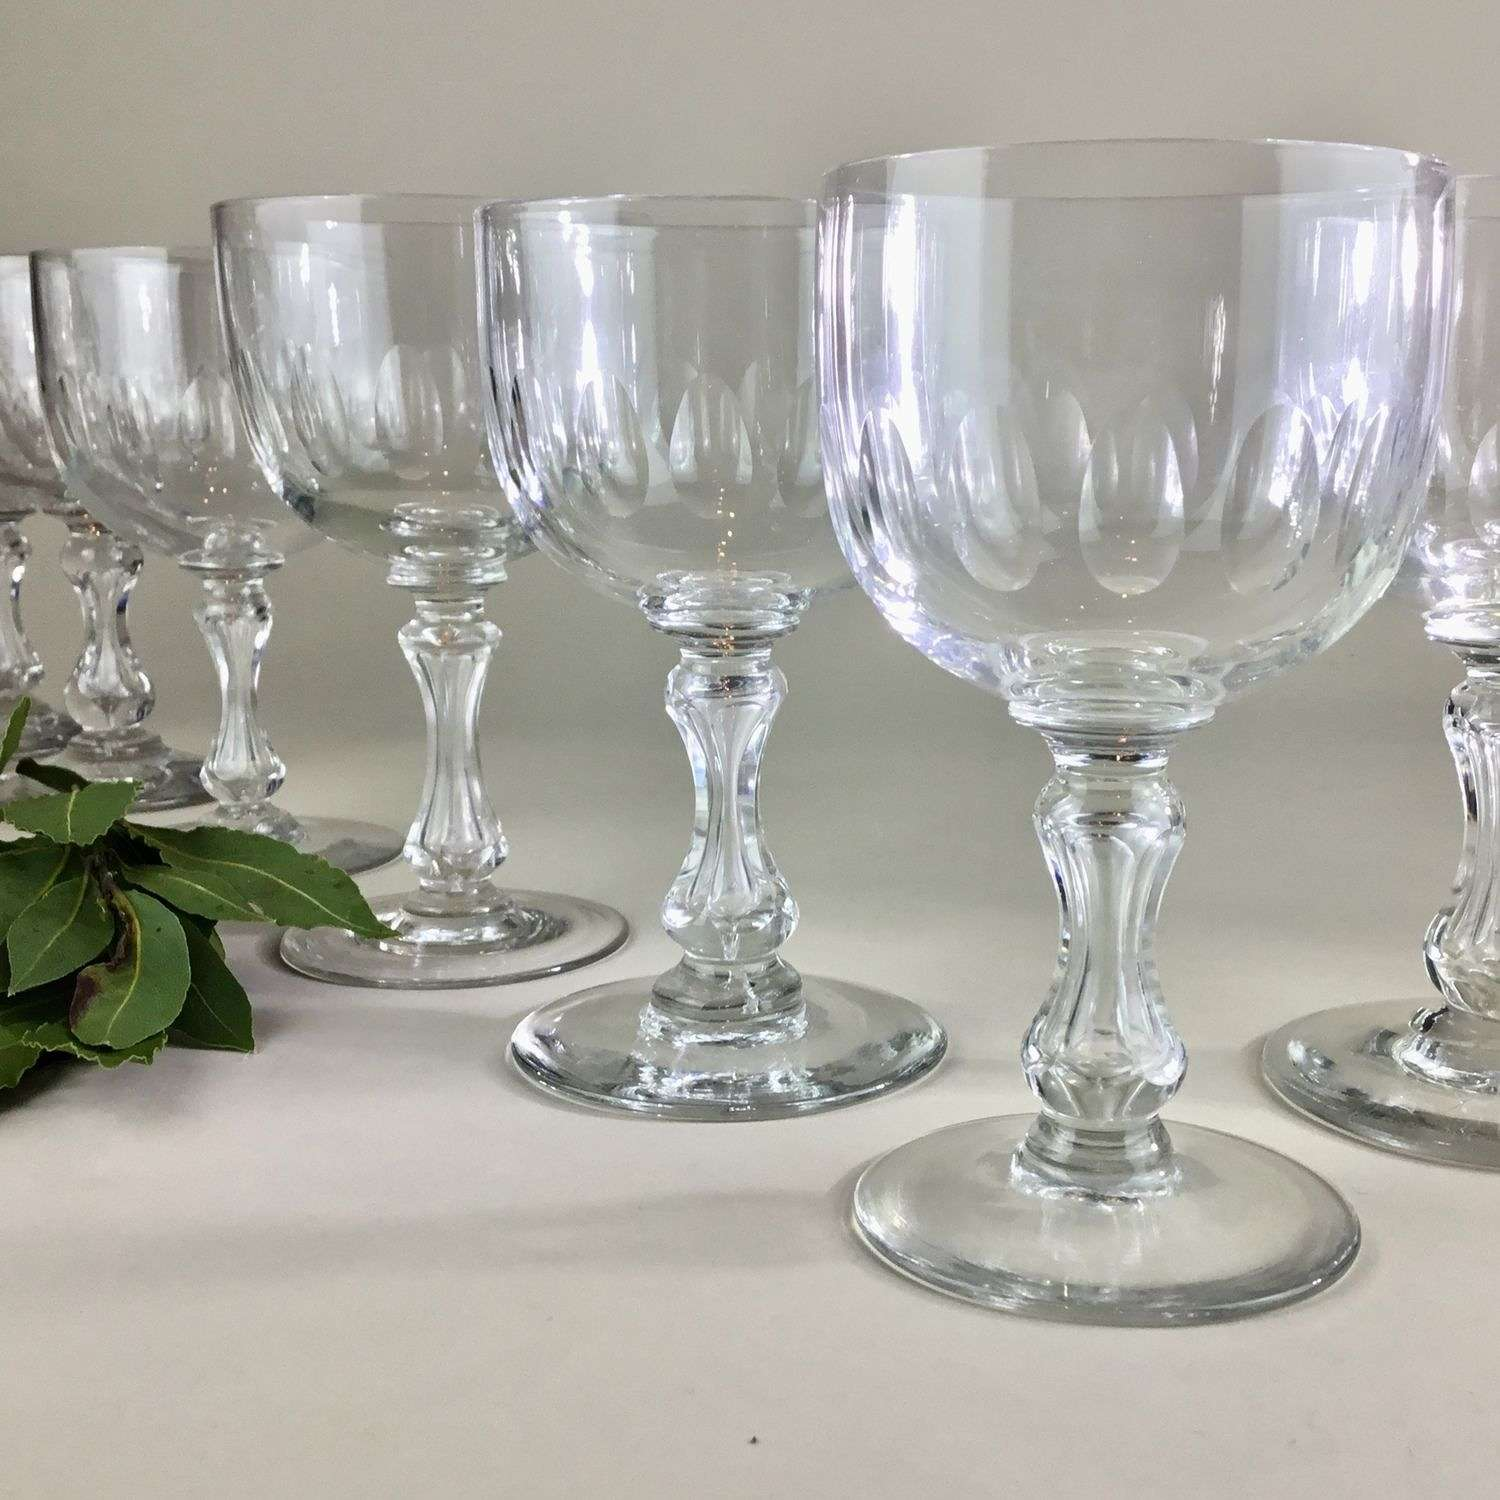 Matched set of ten Victorian bubble stemmed wine glasses